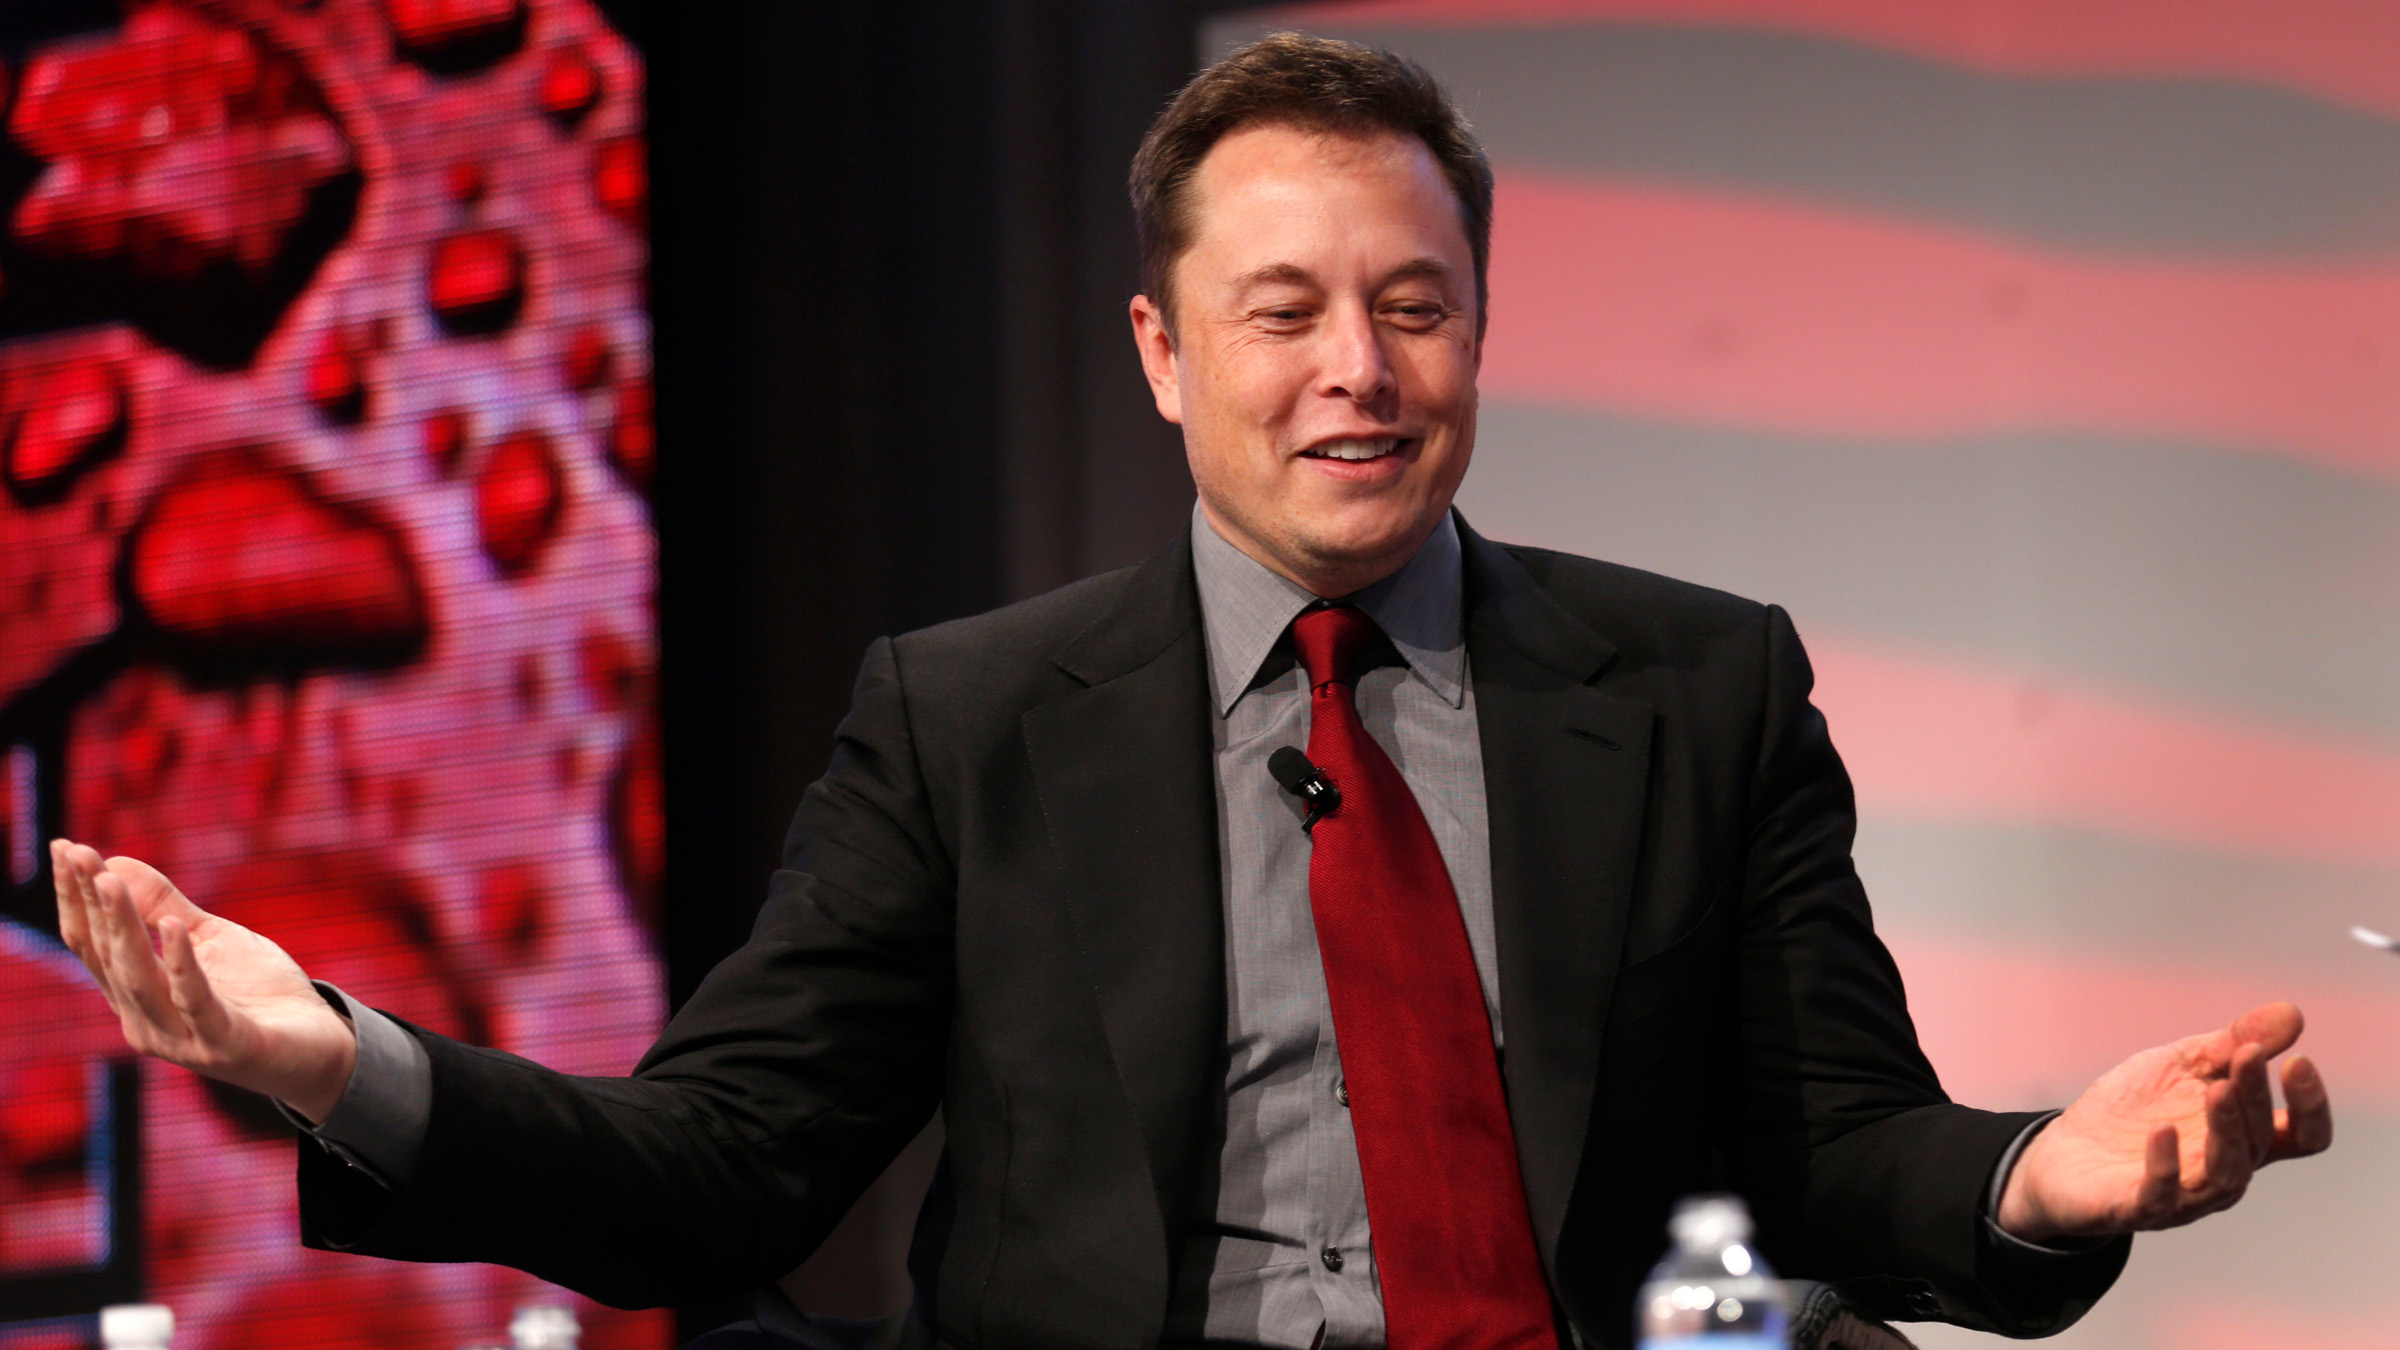 """Tesla Motors CEO Elon Musk talks at the Automotive World News Congress at the Renaissance Center in Detroit, Michigan, January 13, 2015. Tesla Motors Inc plans to boost production of electric cars to """"at least a few million a year"""" by 2025 from fewer than 40,000 last year, Musk said Tuesday. Picture taken January 13, 2015."""